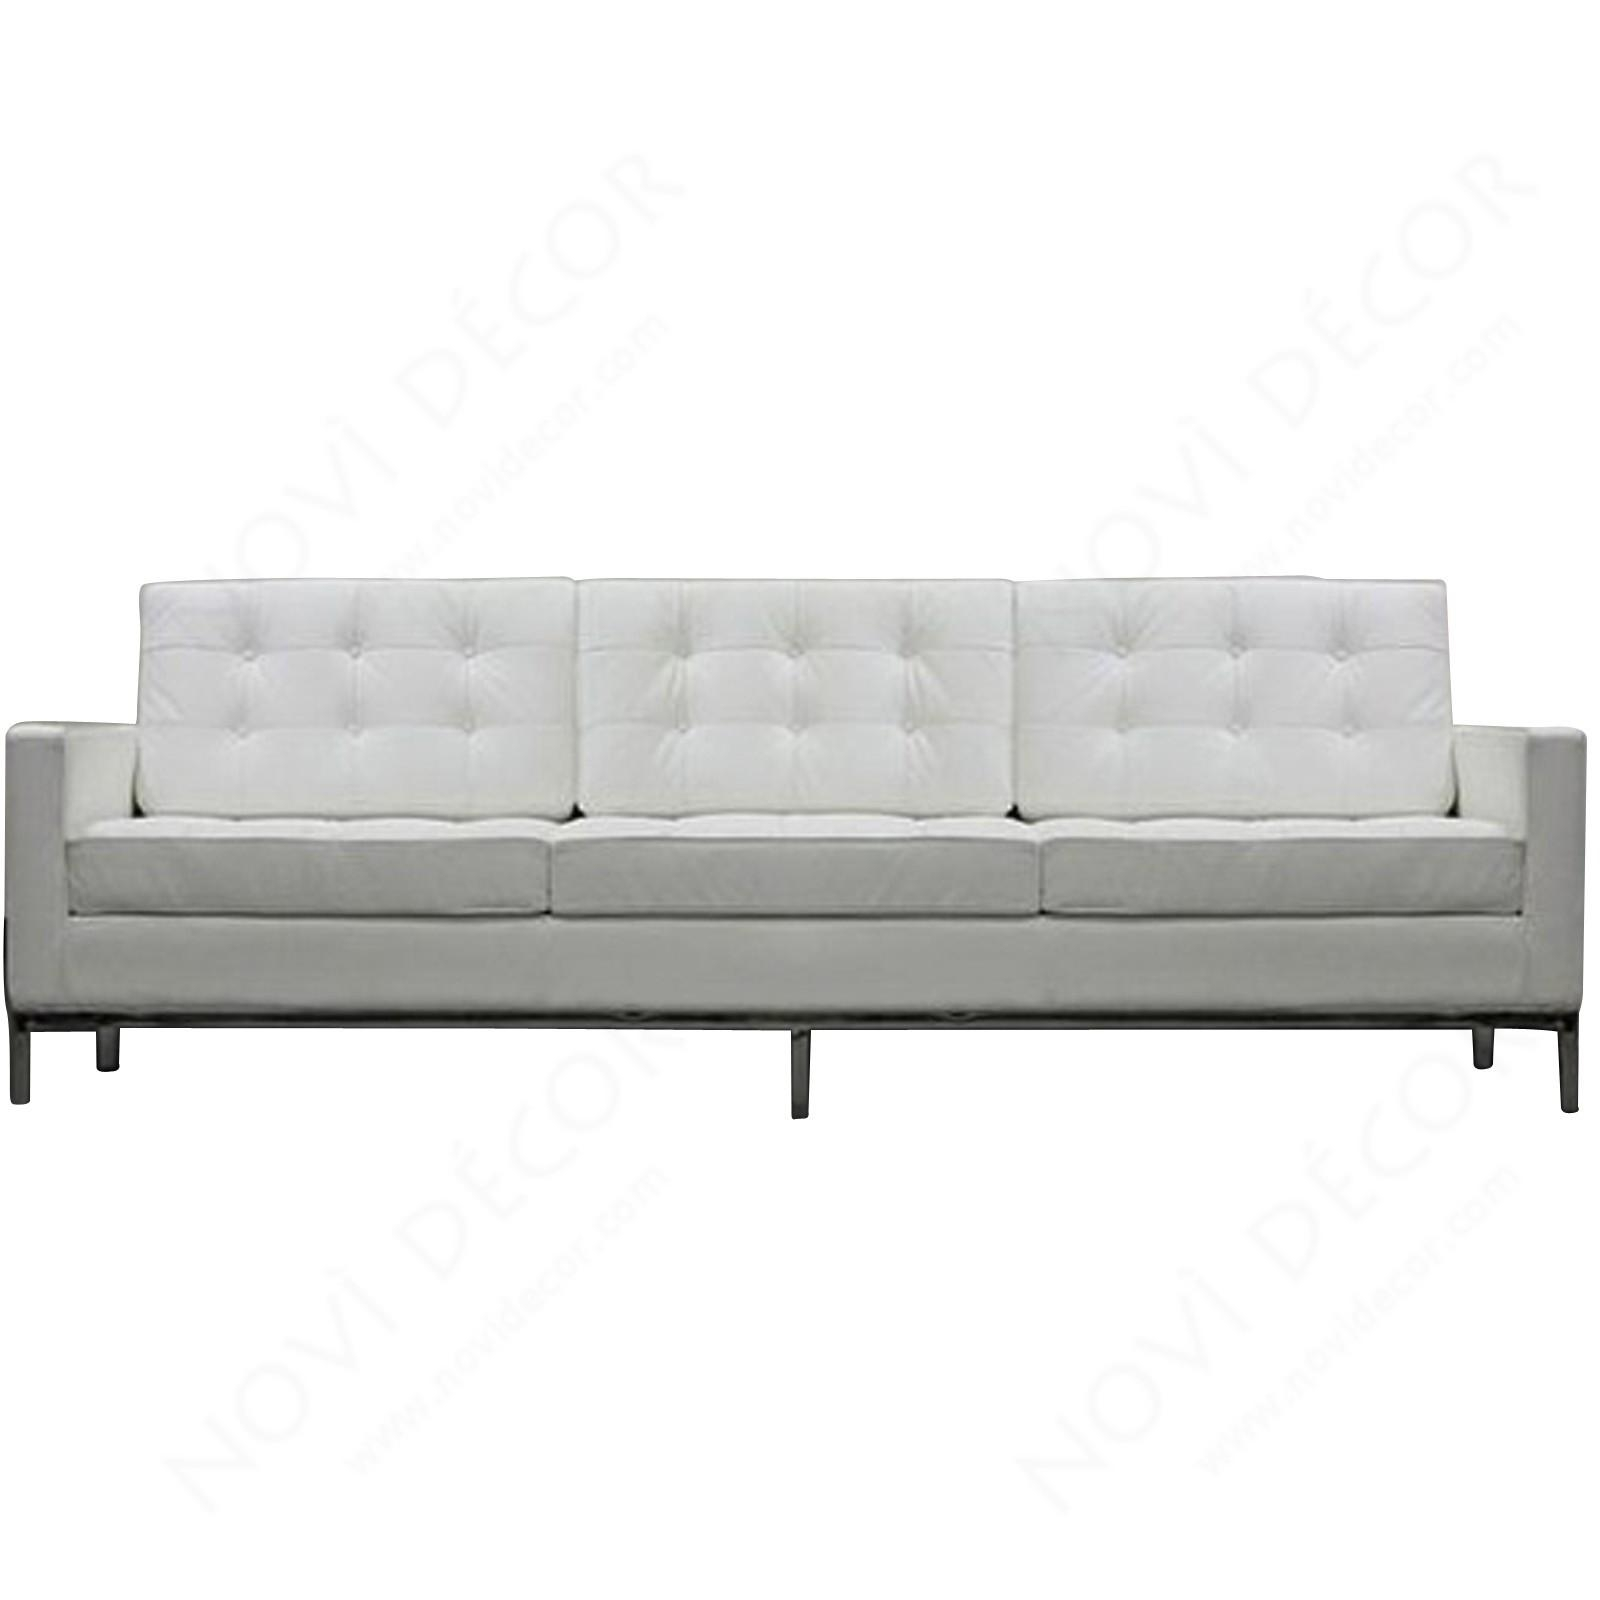 Fresh Florence Knoll Sofa Bed #14203 For Florence Sofa Beds (Image 10 of 20)